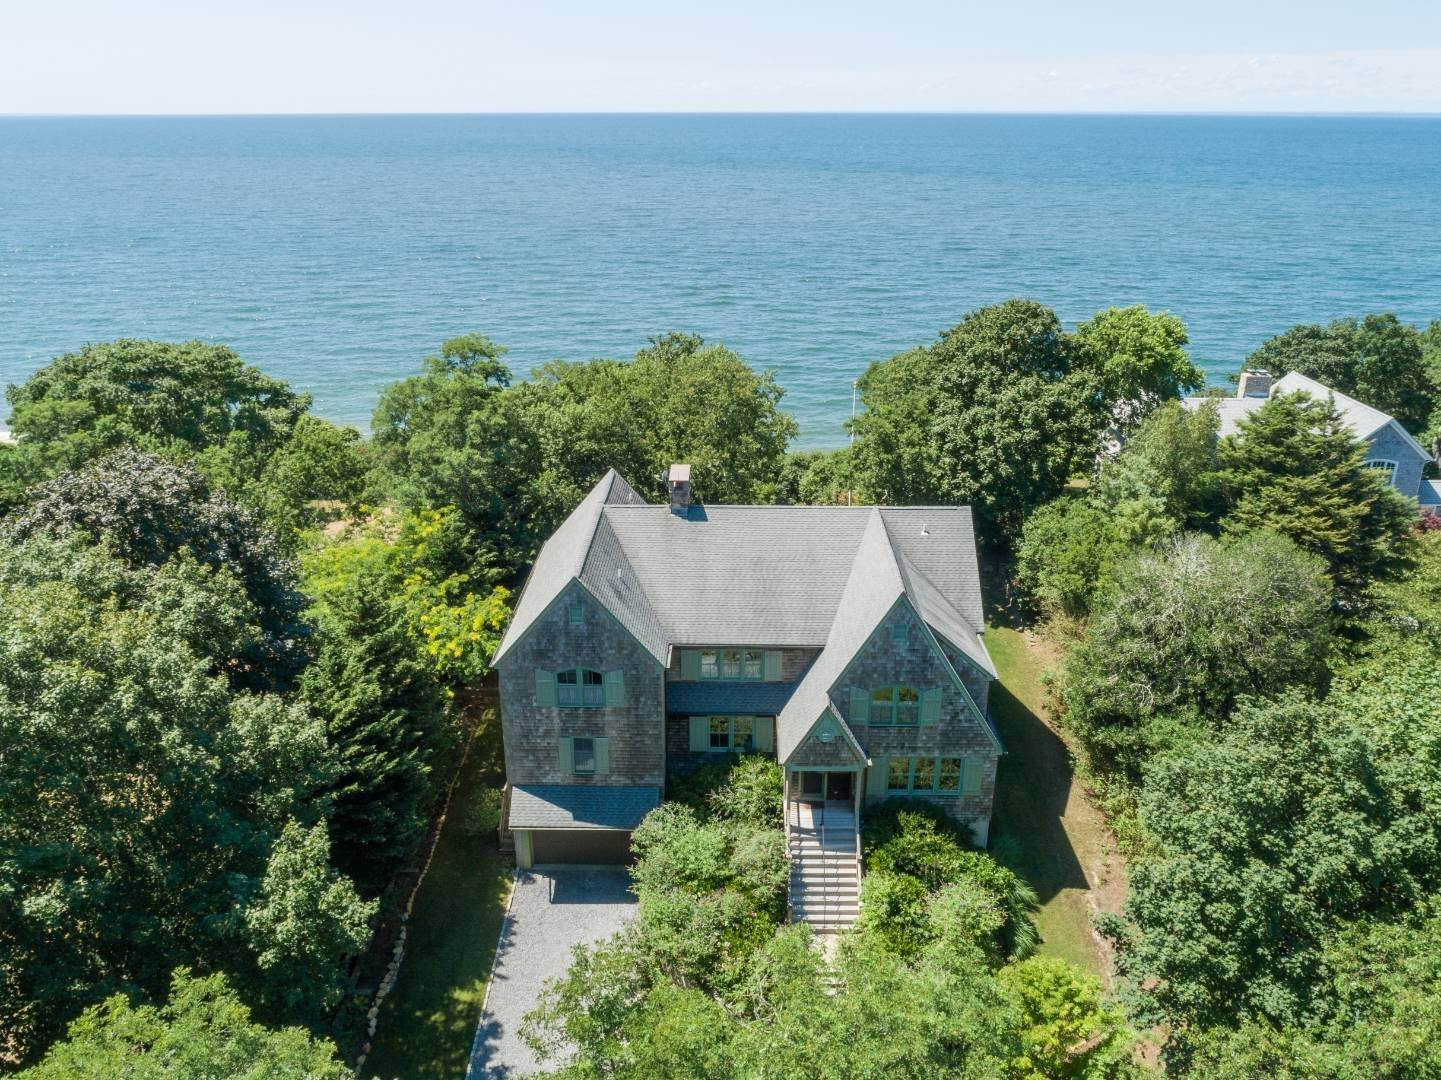 Single Family Home for Sale at Soundfront With Panoramic Views 1700 Hyatt Road, Southold, NY 11971